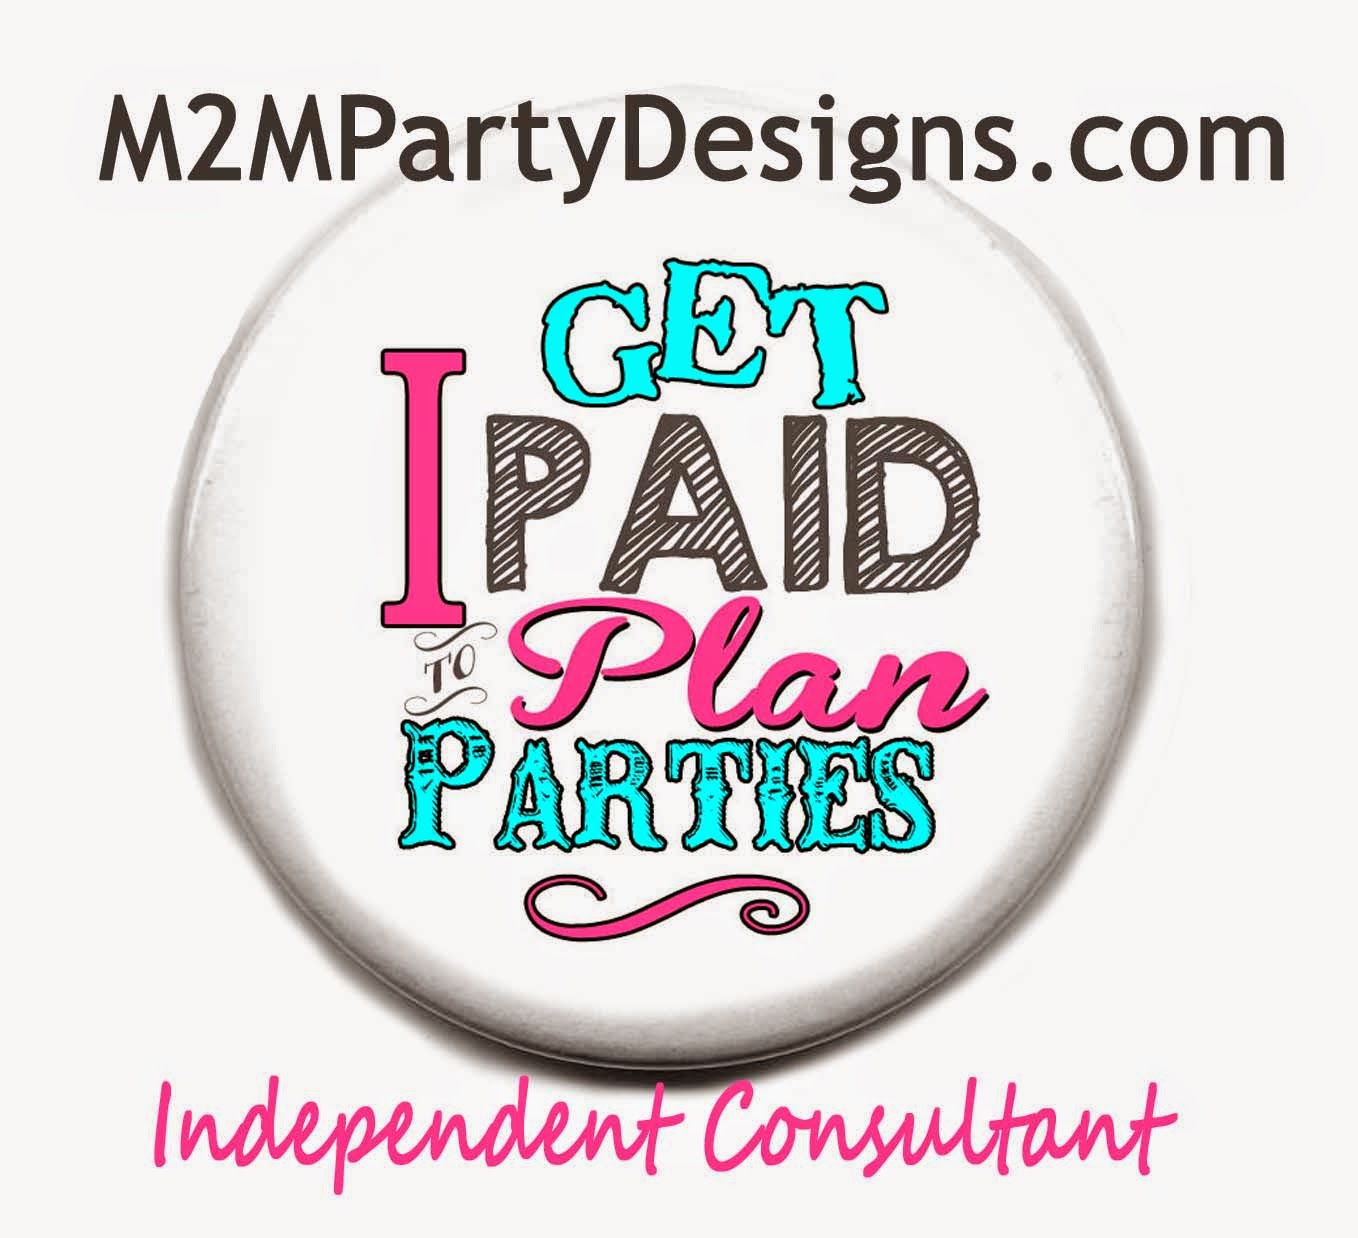 M2M Party Design Independent Consultant